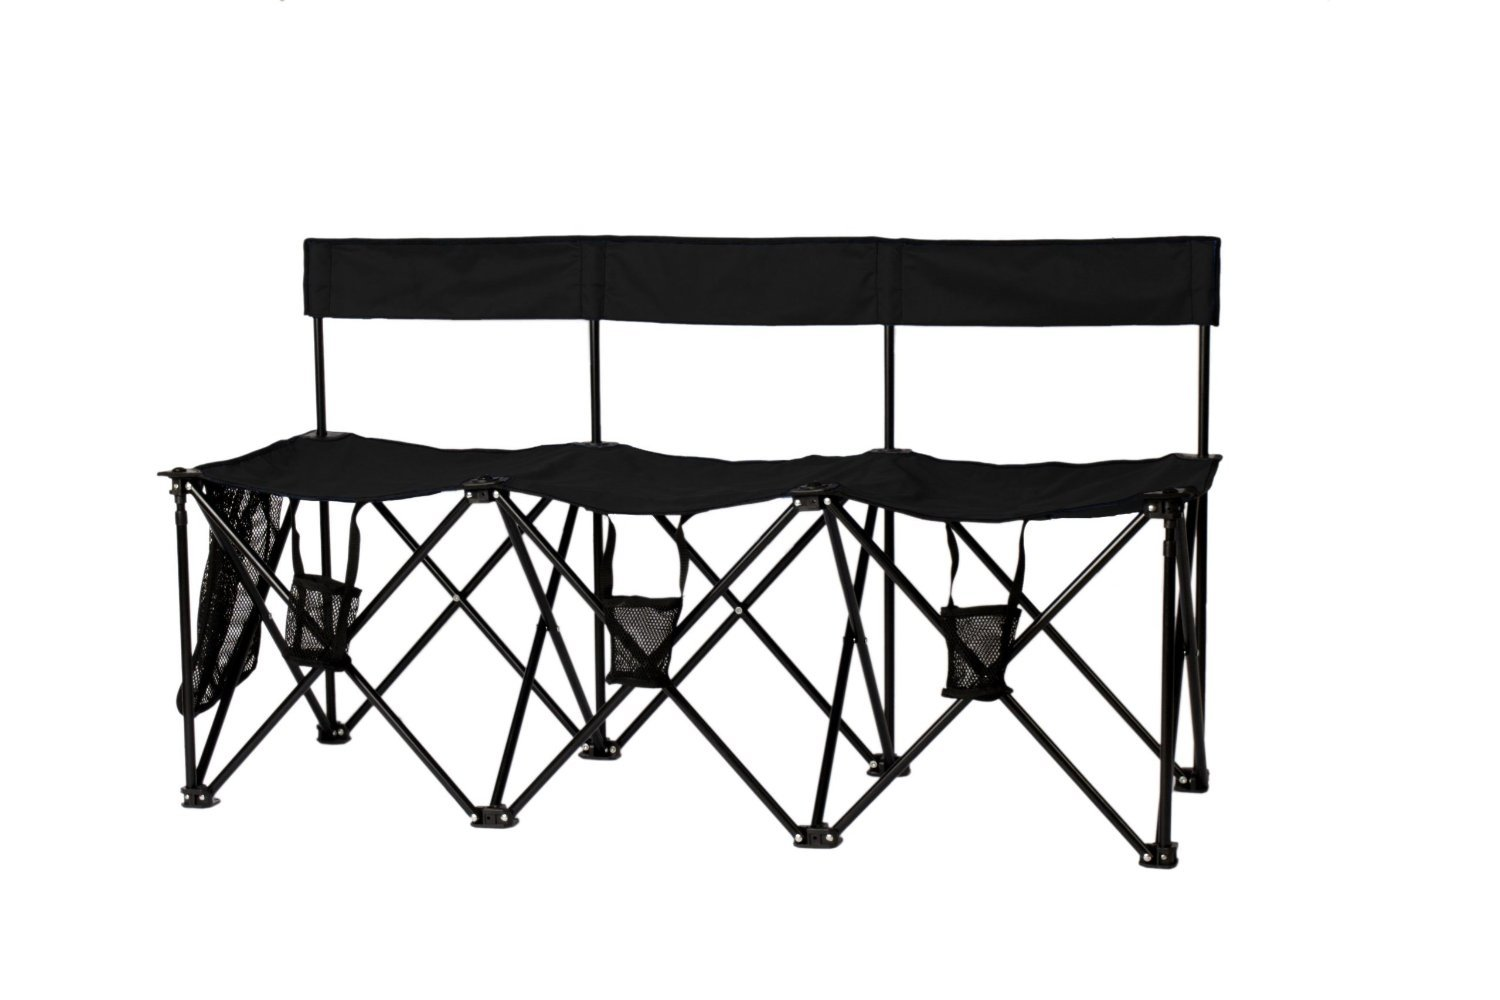 Sportify Deluxe 3 Seater Ergo-Back Foldable Bench with Drink Holders & Gear Pocket (Black)